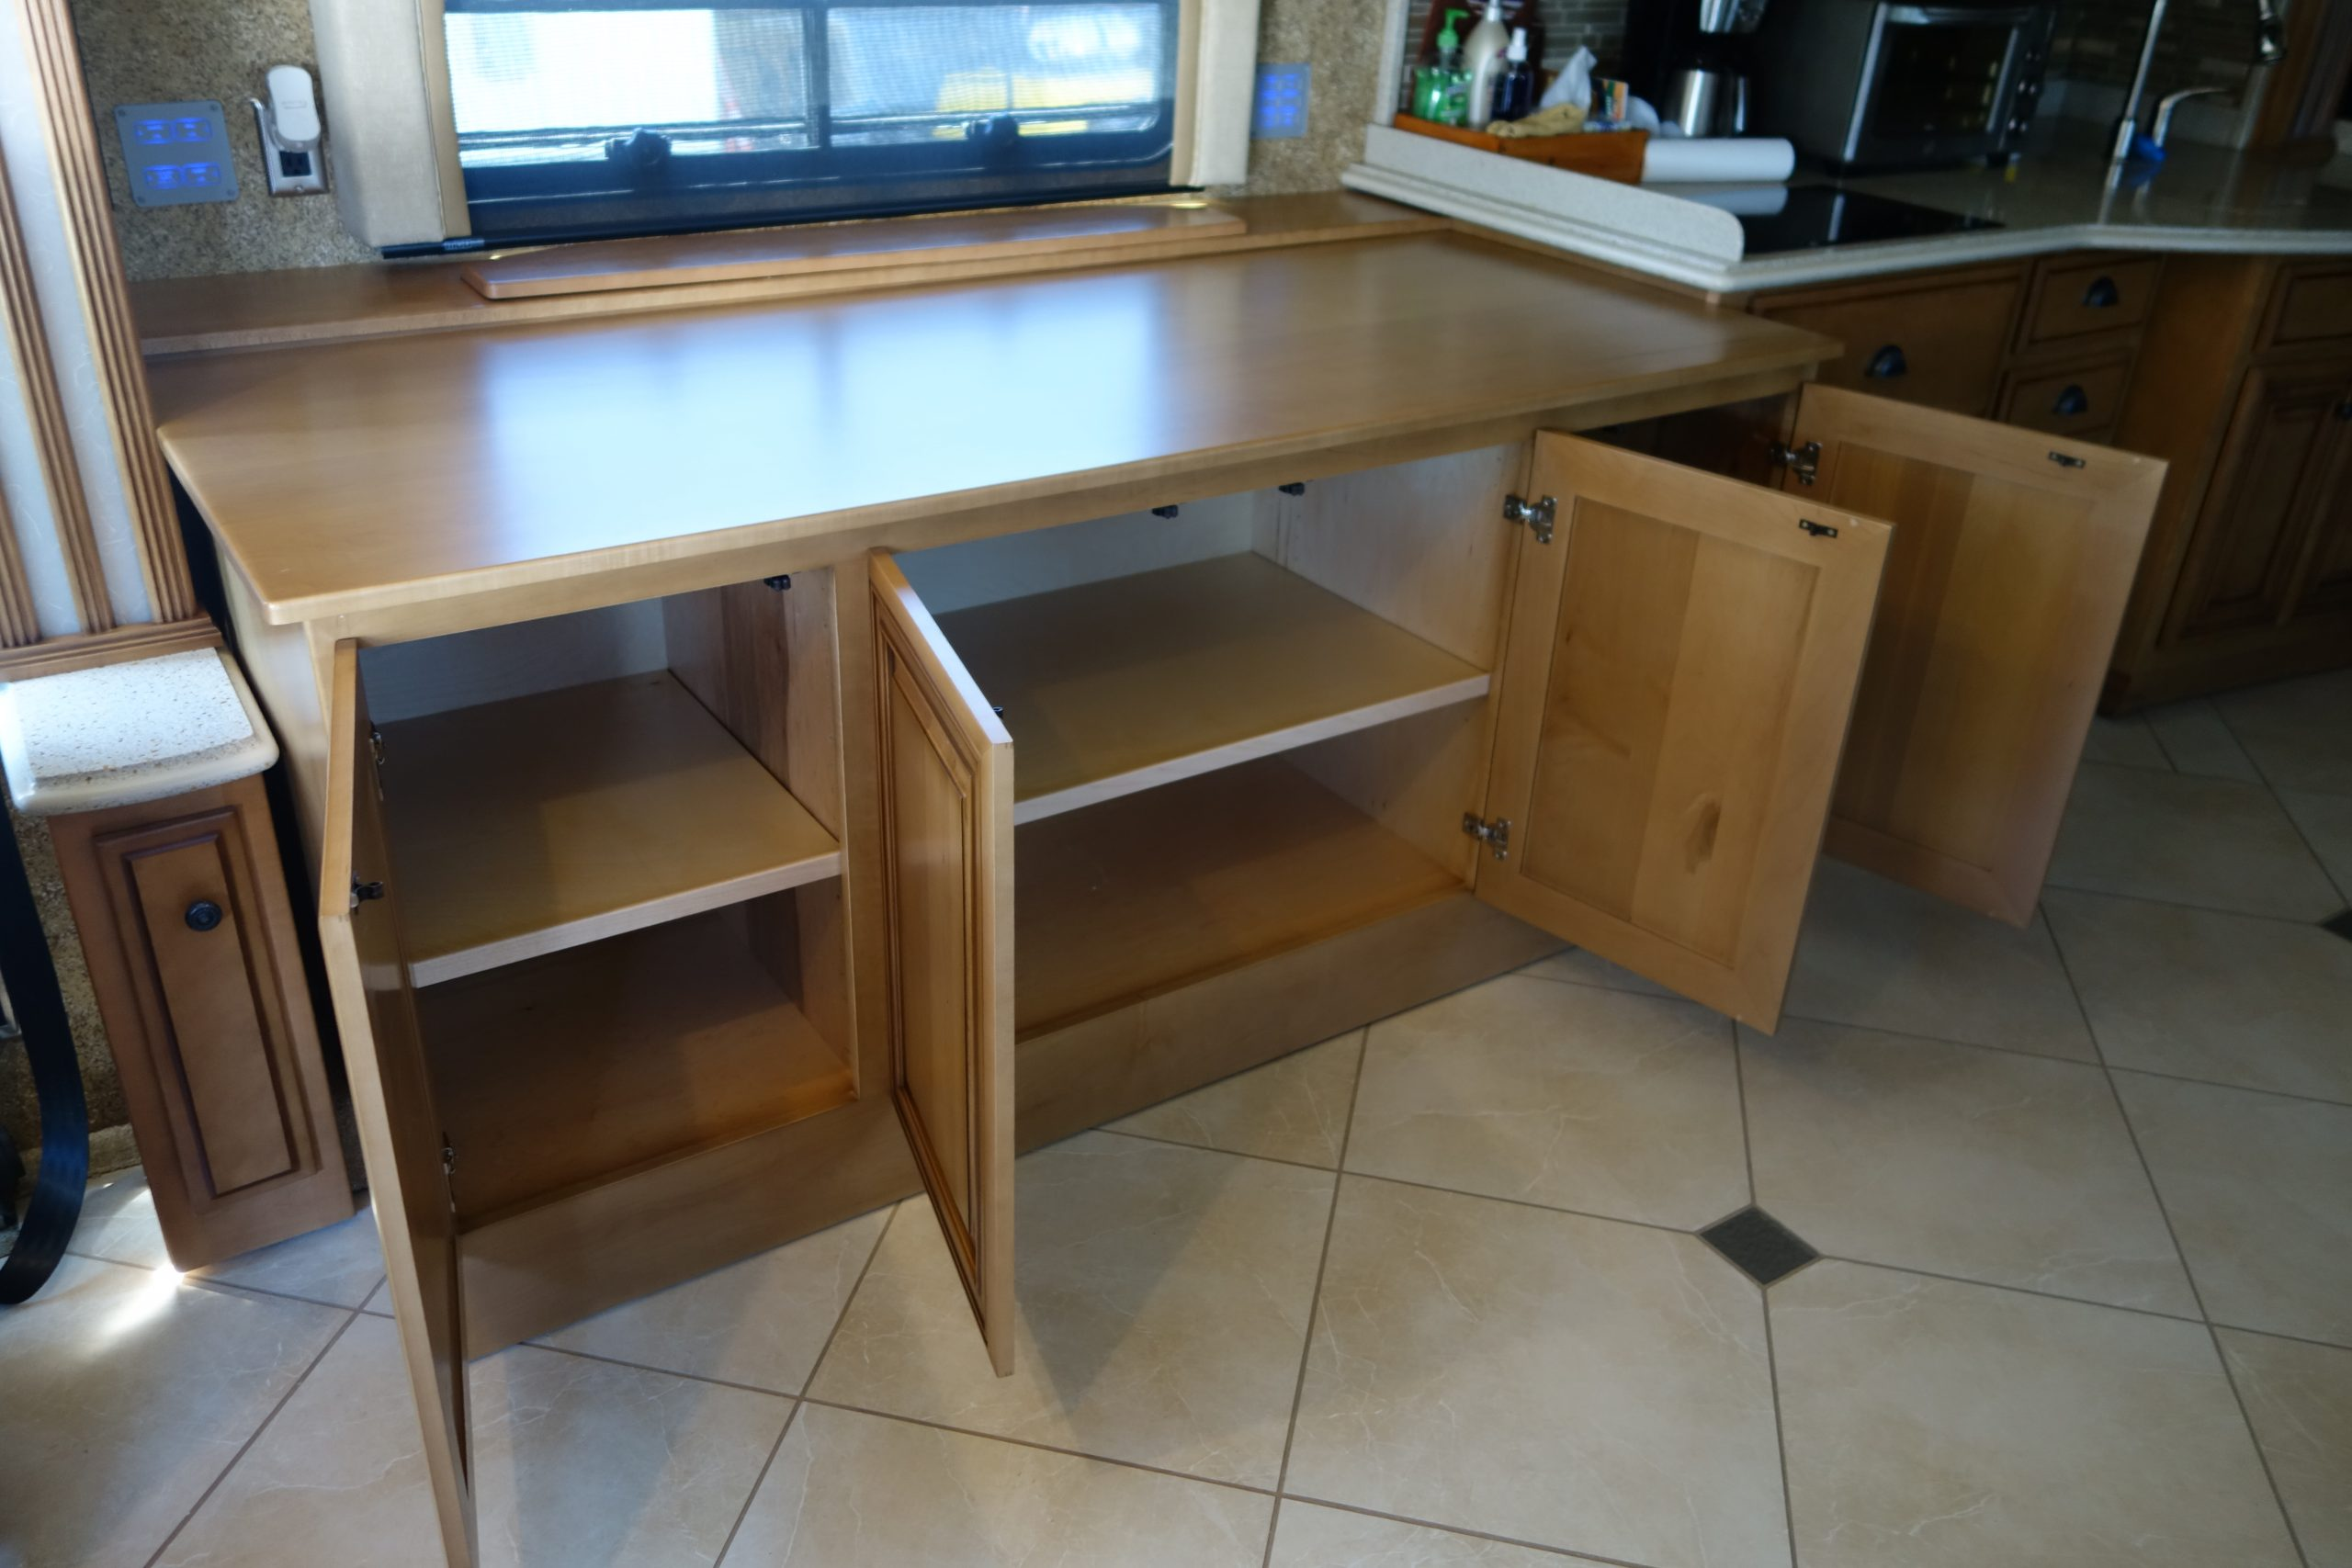 Custom countertop with open cabinets